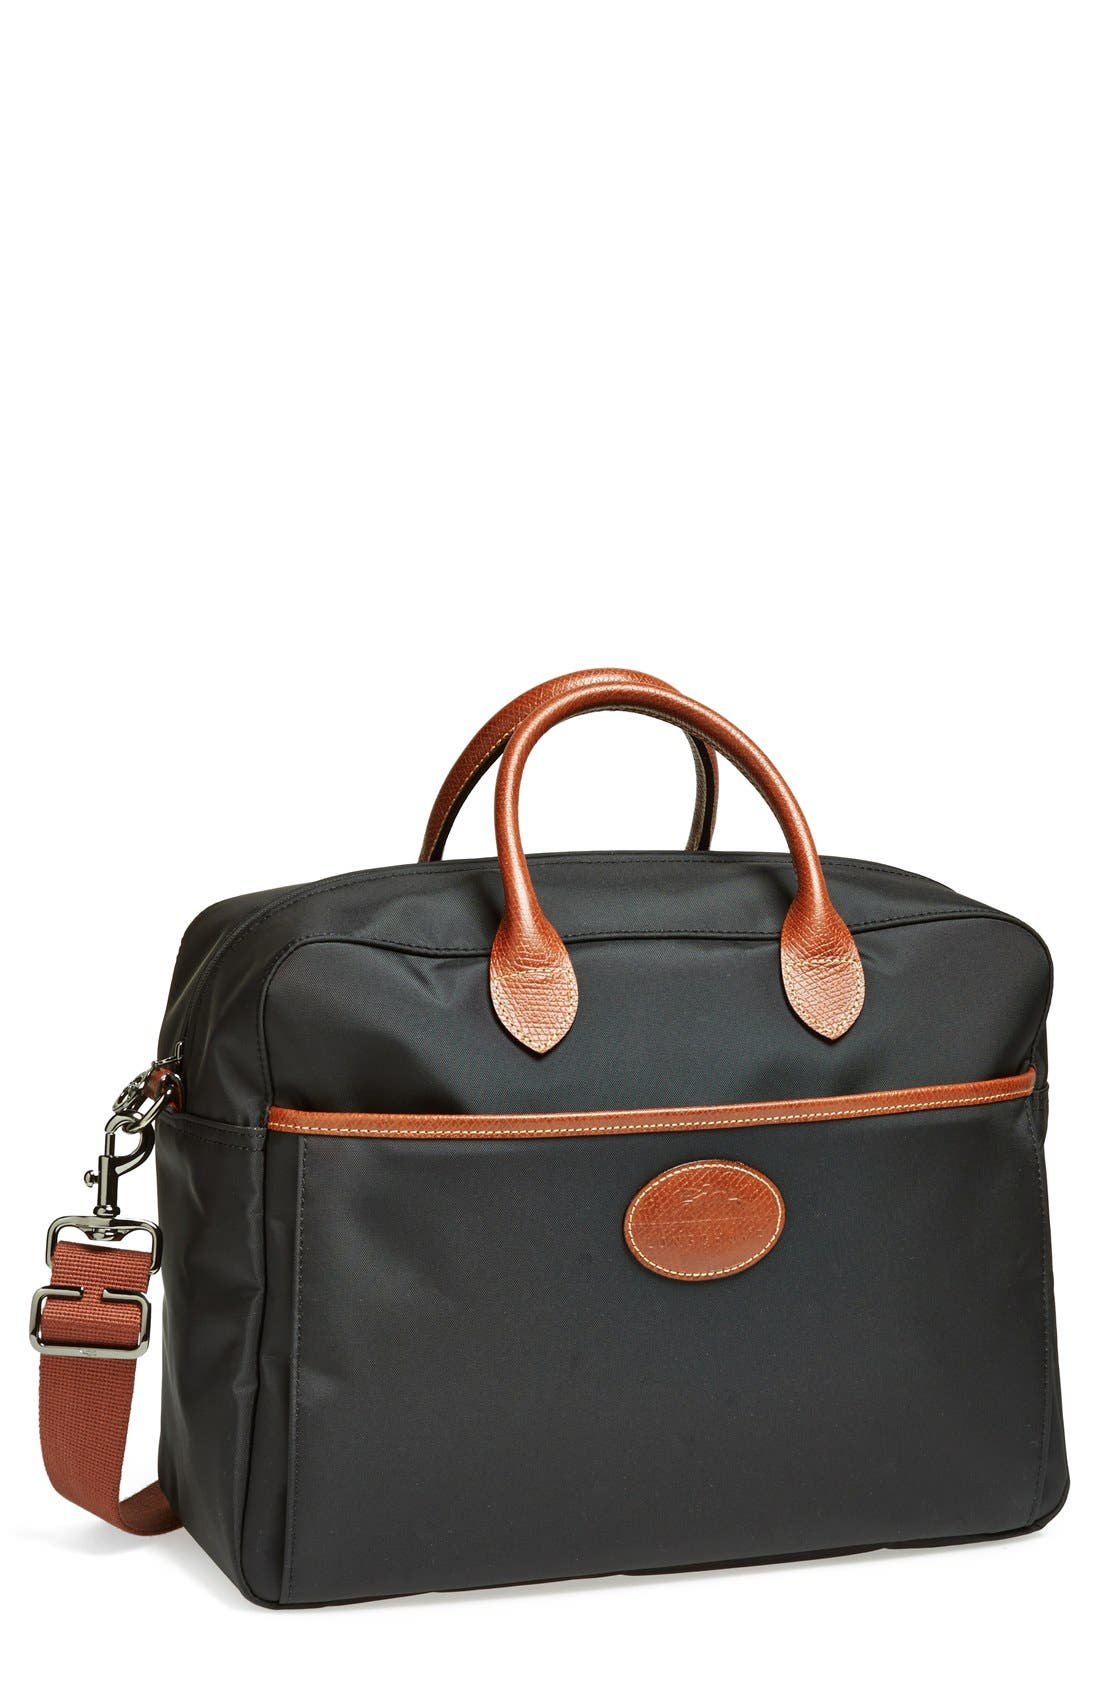 Alternate Image 1 Selected - Longchamp 'Le Pliage' Travel Bag (14 Inch)